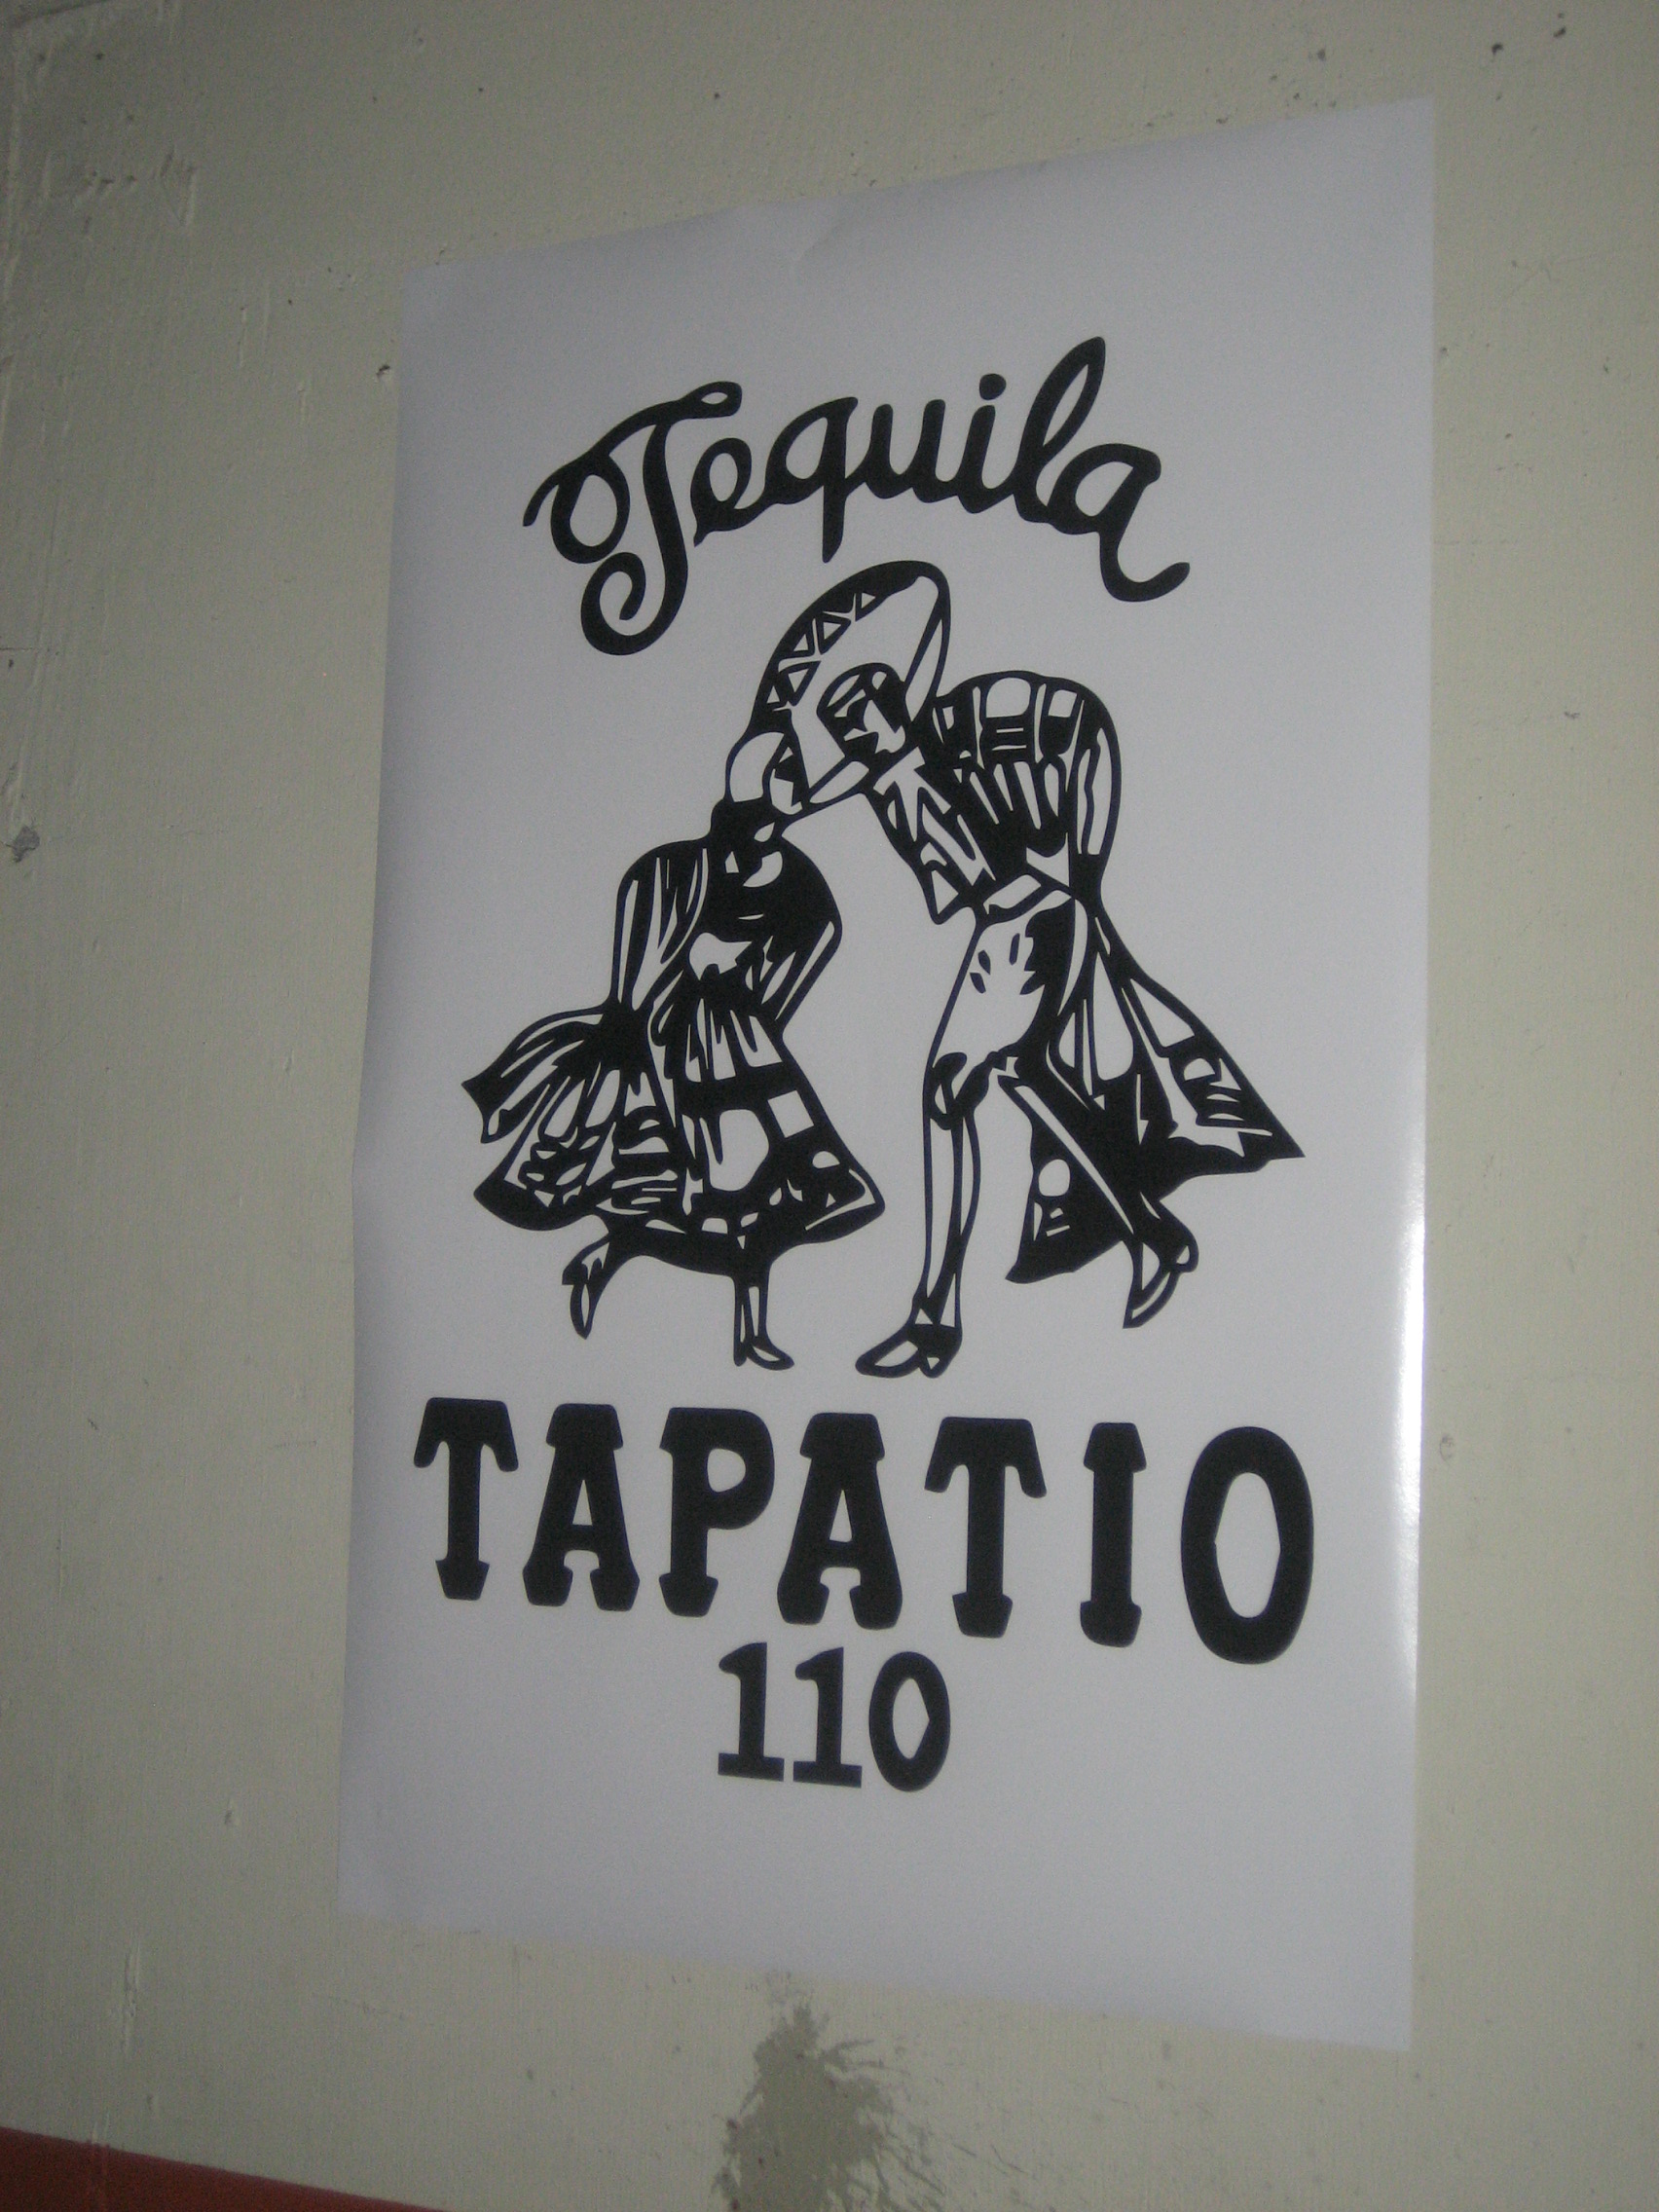 Tequila Tapatío And The Source of Life